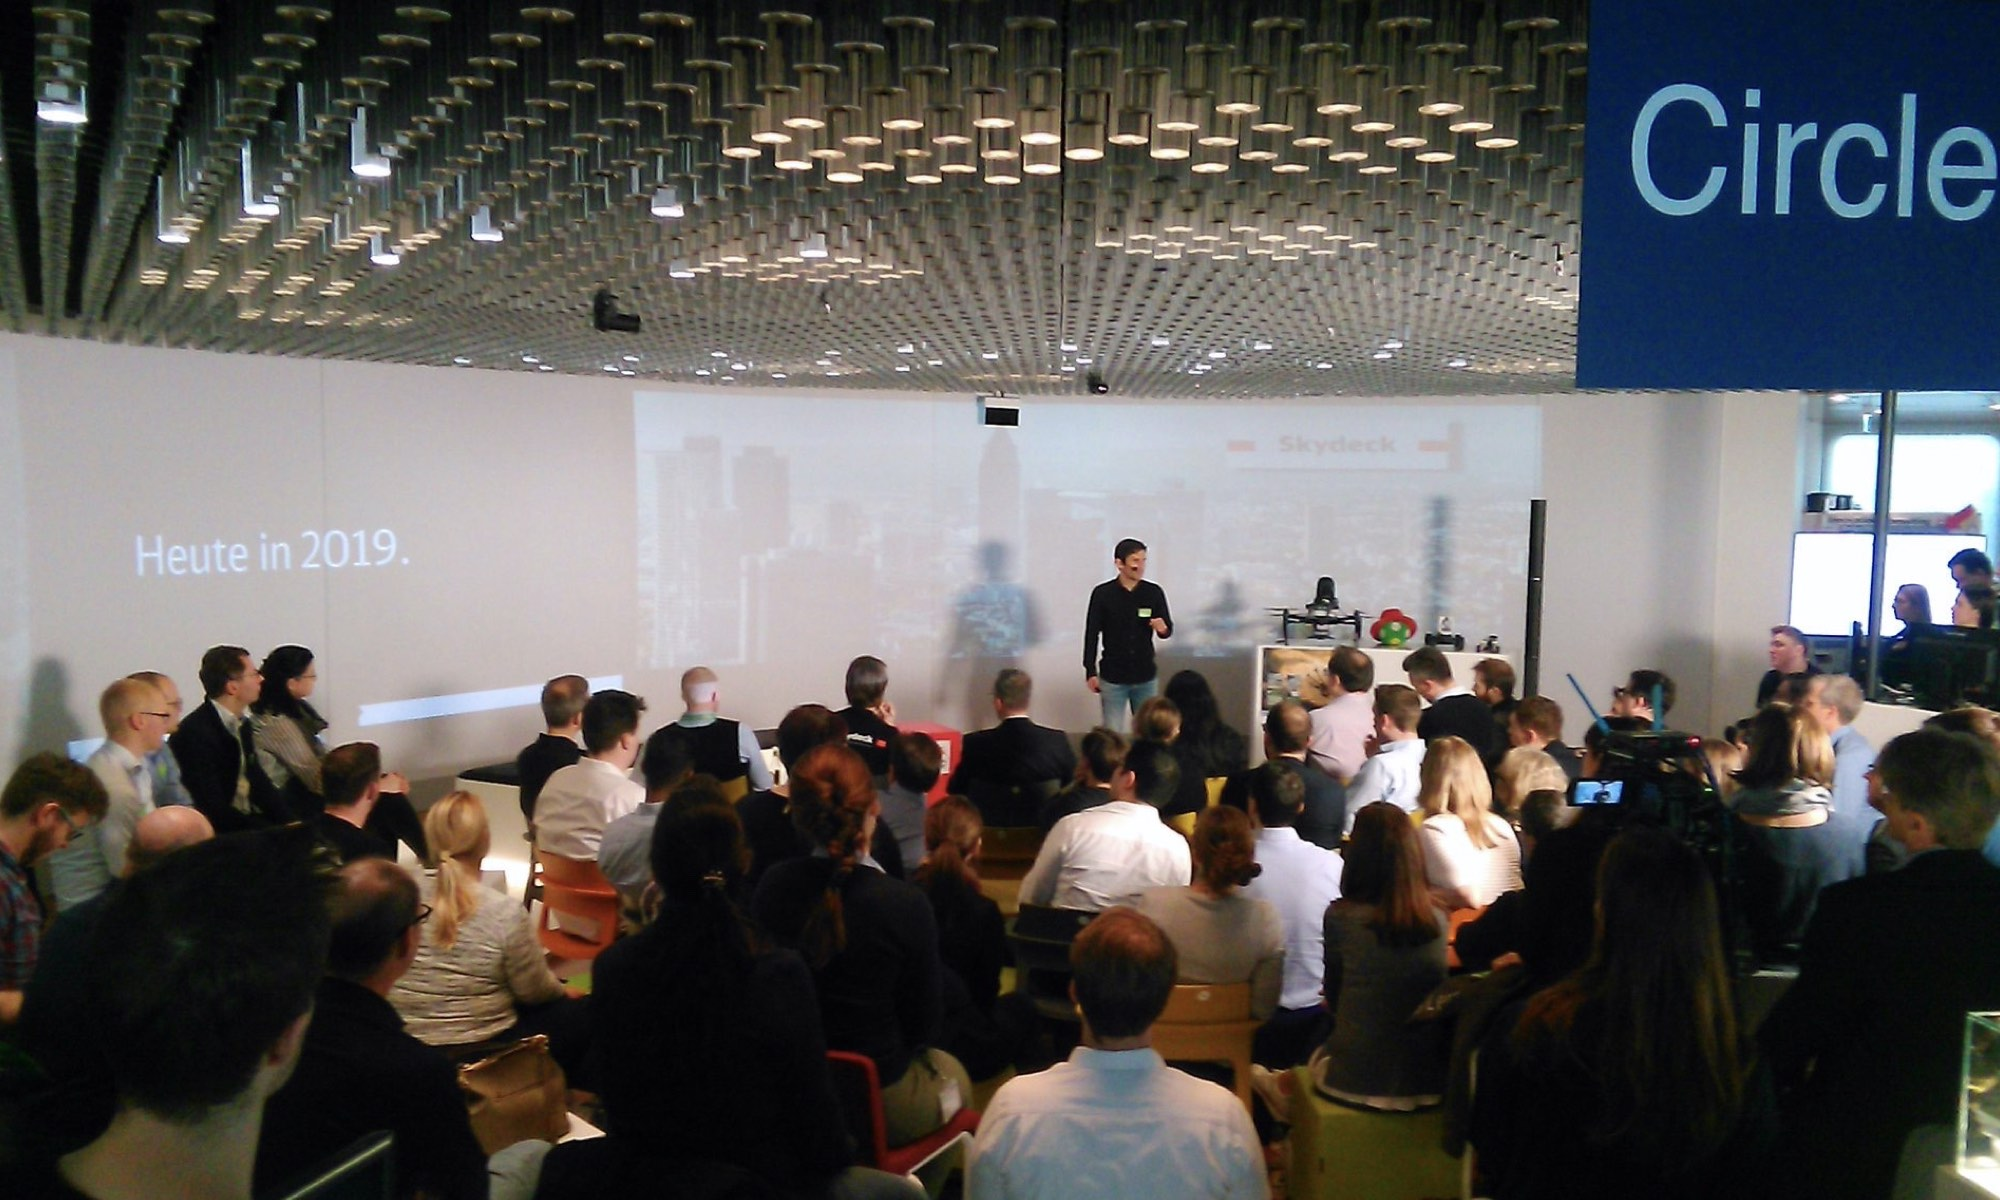 JOELESLI pitches at the Skydeck DB Systel